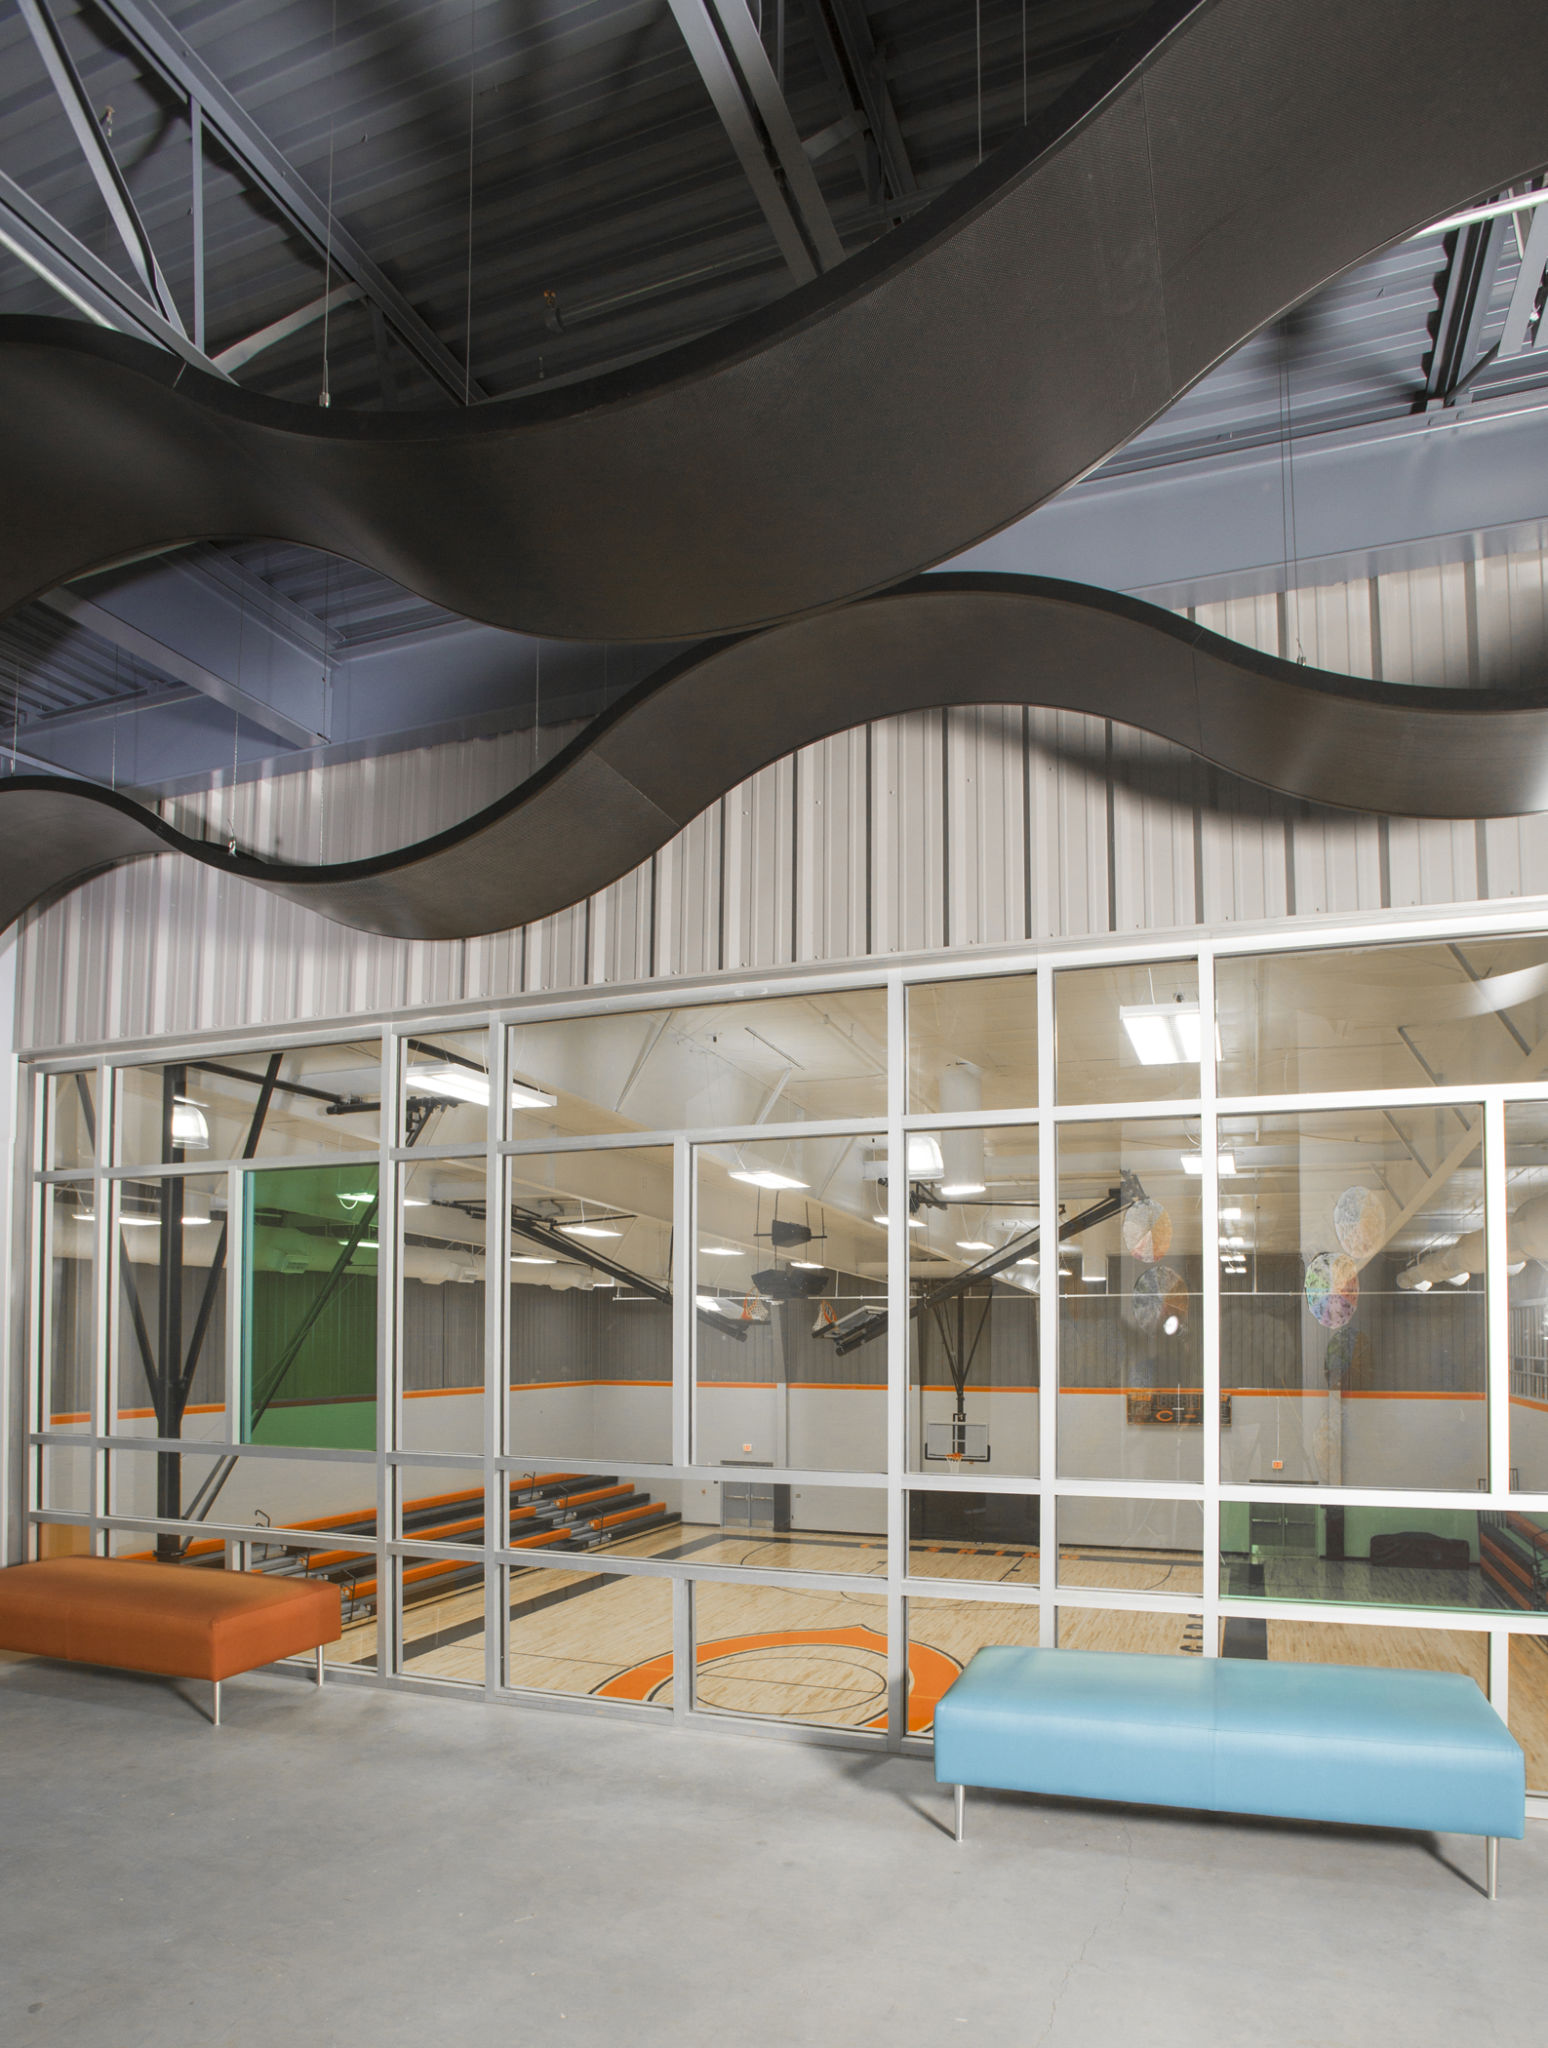 Oklahoma School S Ceiling Panels Are Ahead Of The Curve